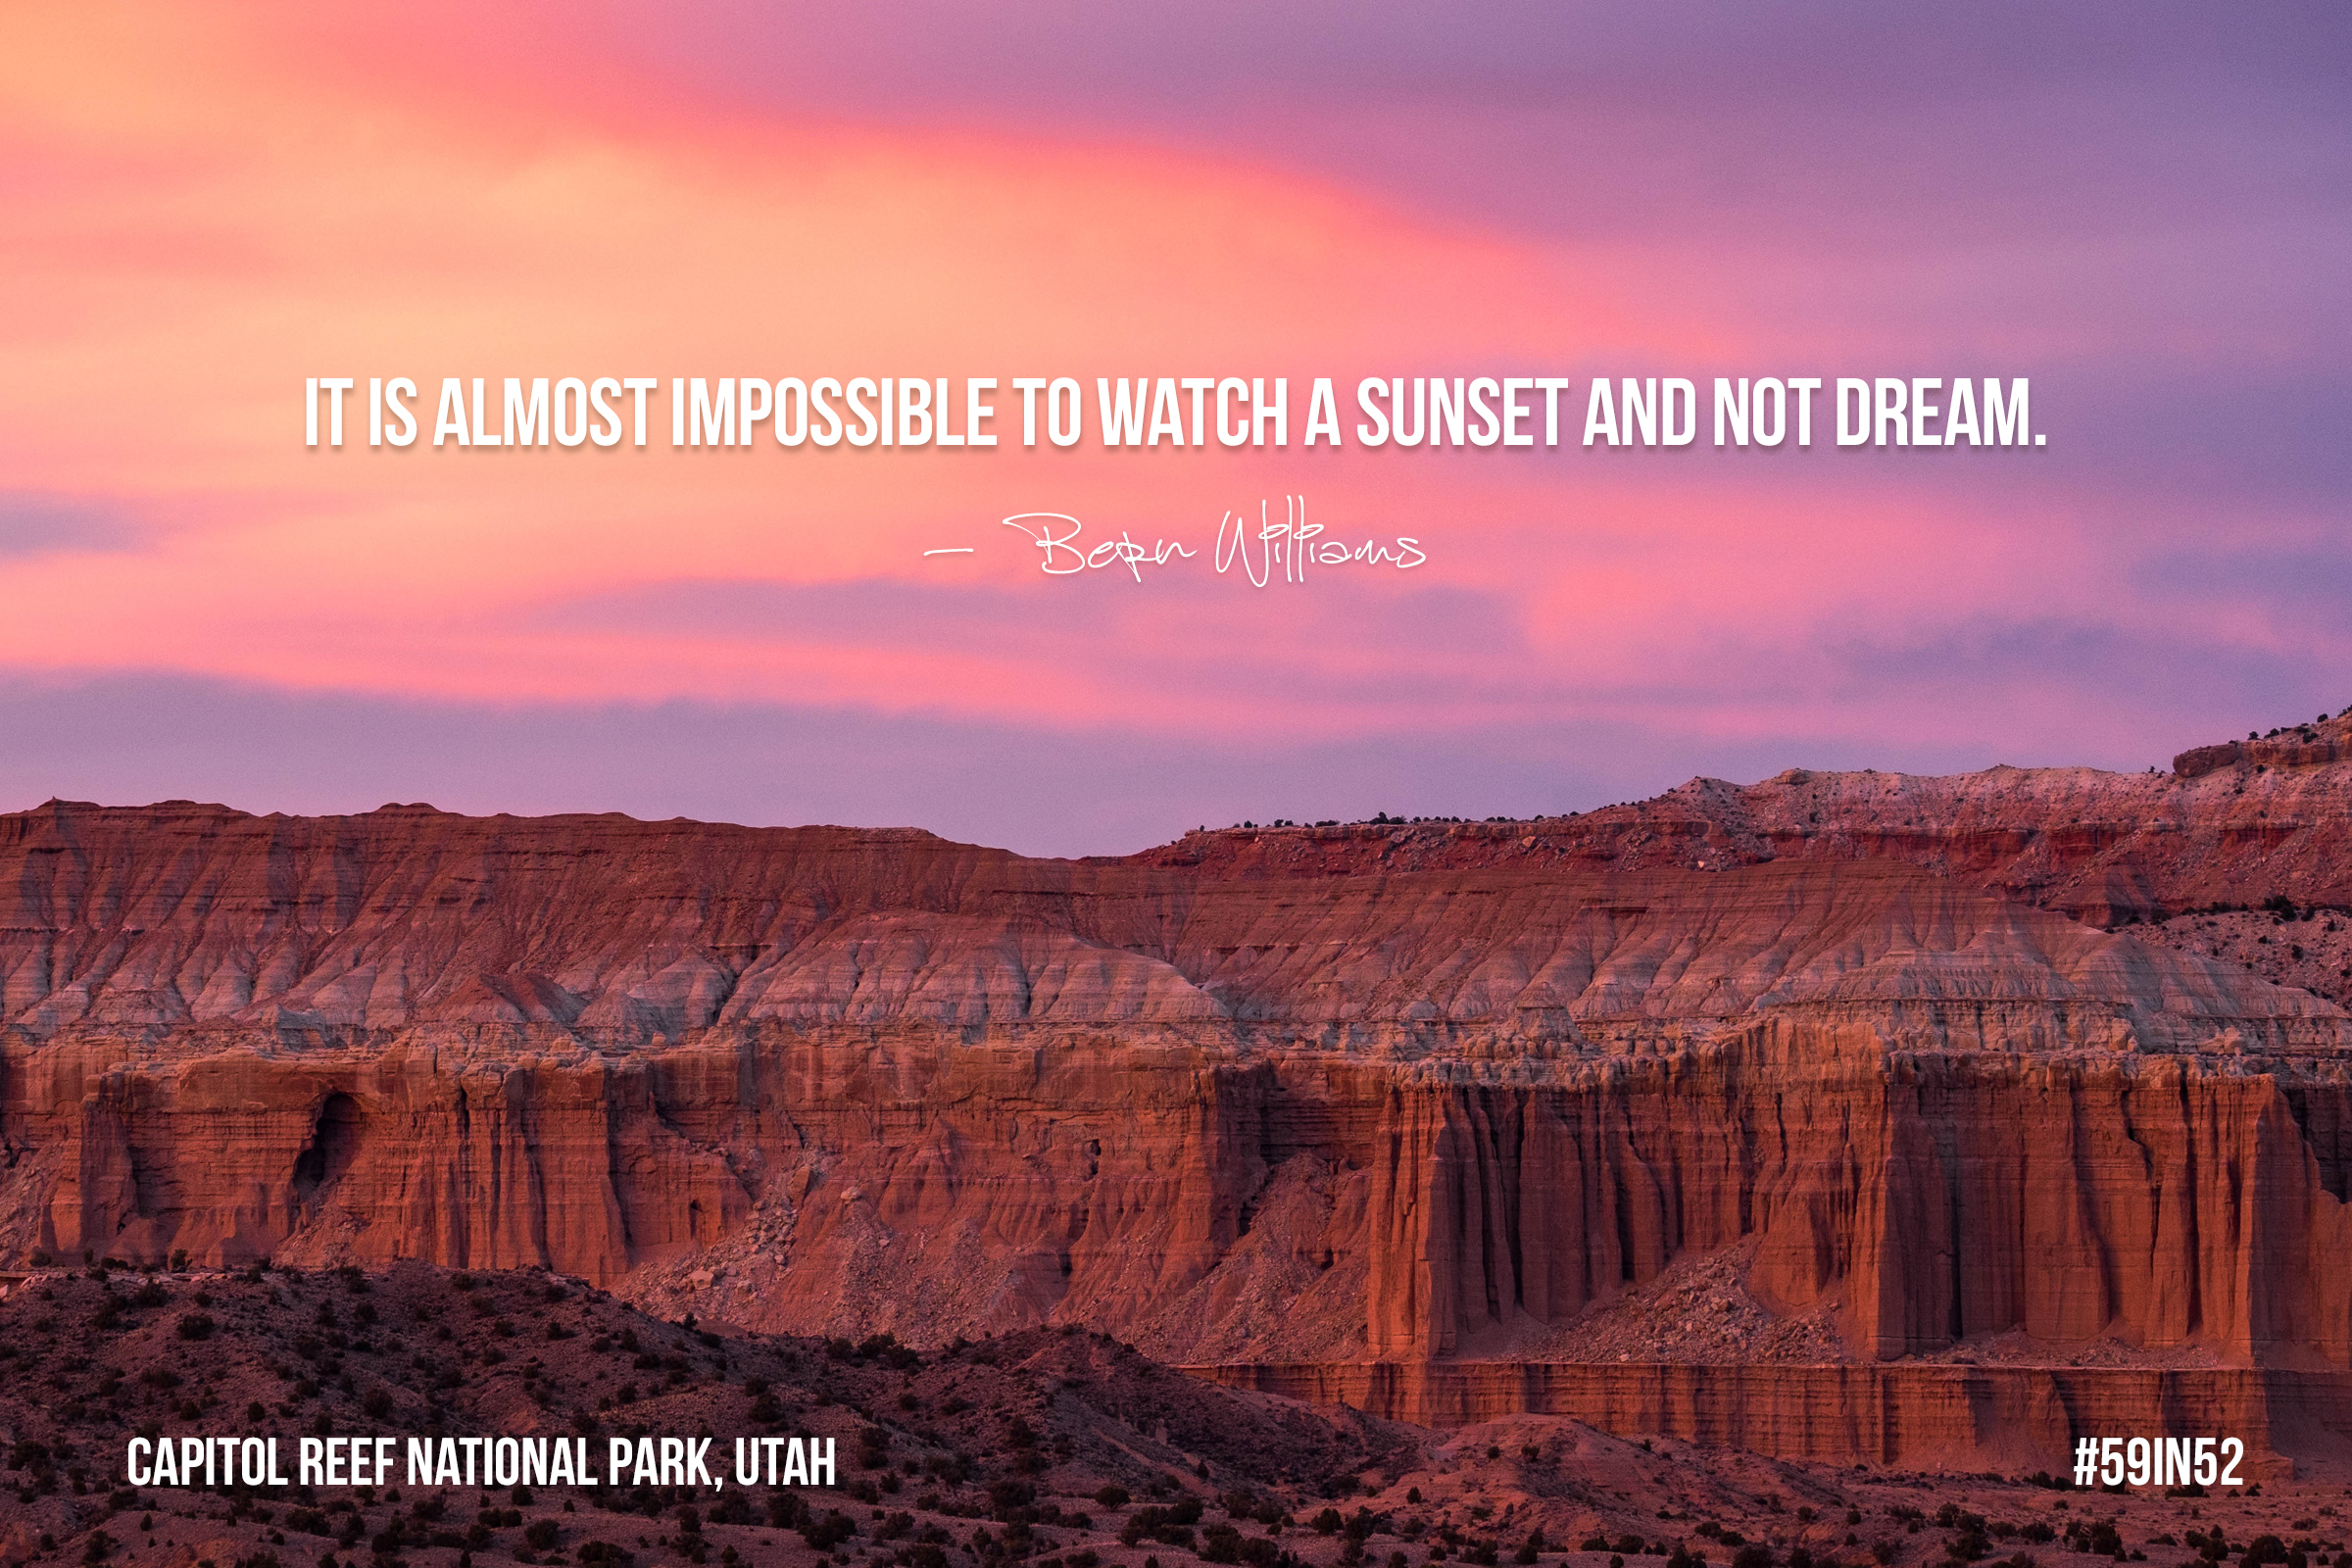 """It is impossible to watch the sunset and not dream."" - Bern WIlliams"